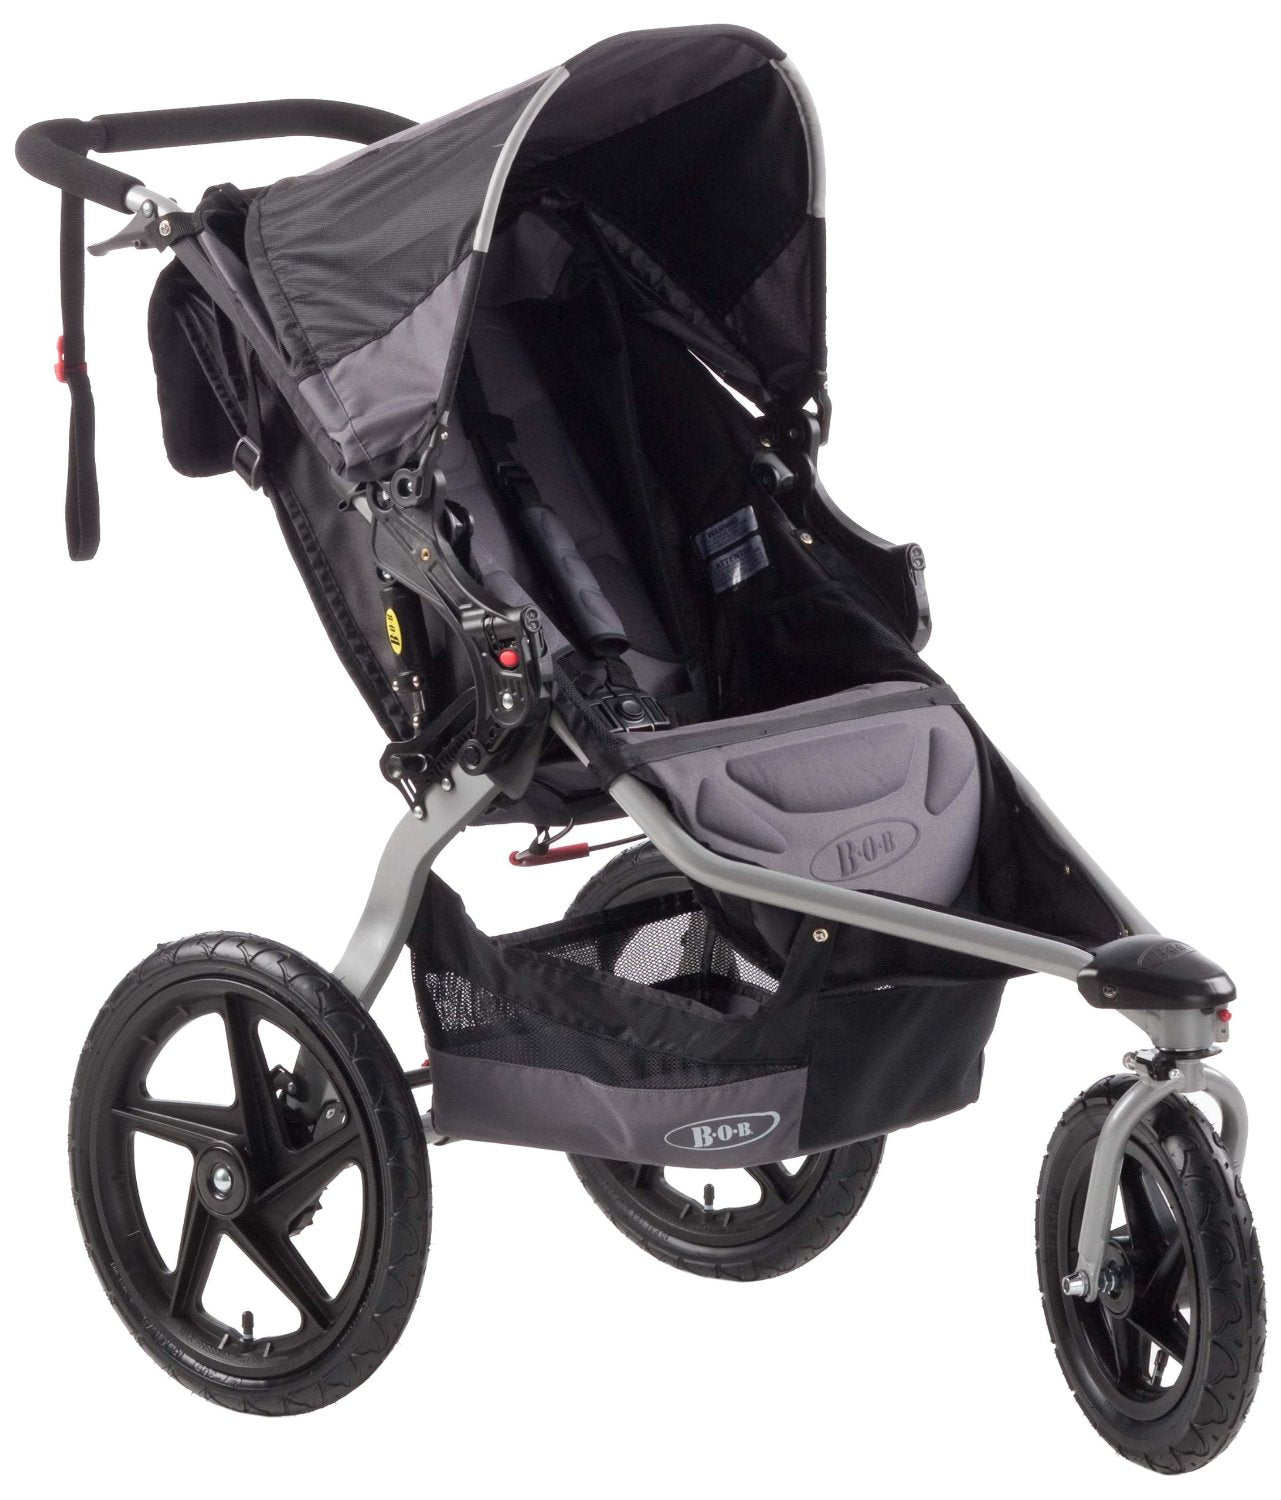 Stroller, How to Choose the Best Baby Strollers